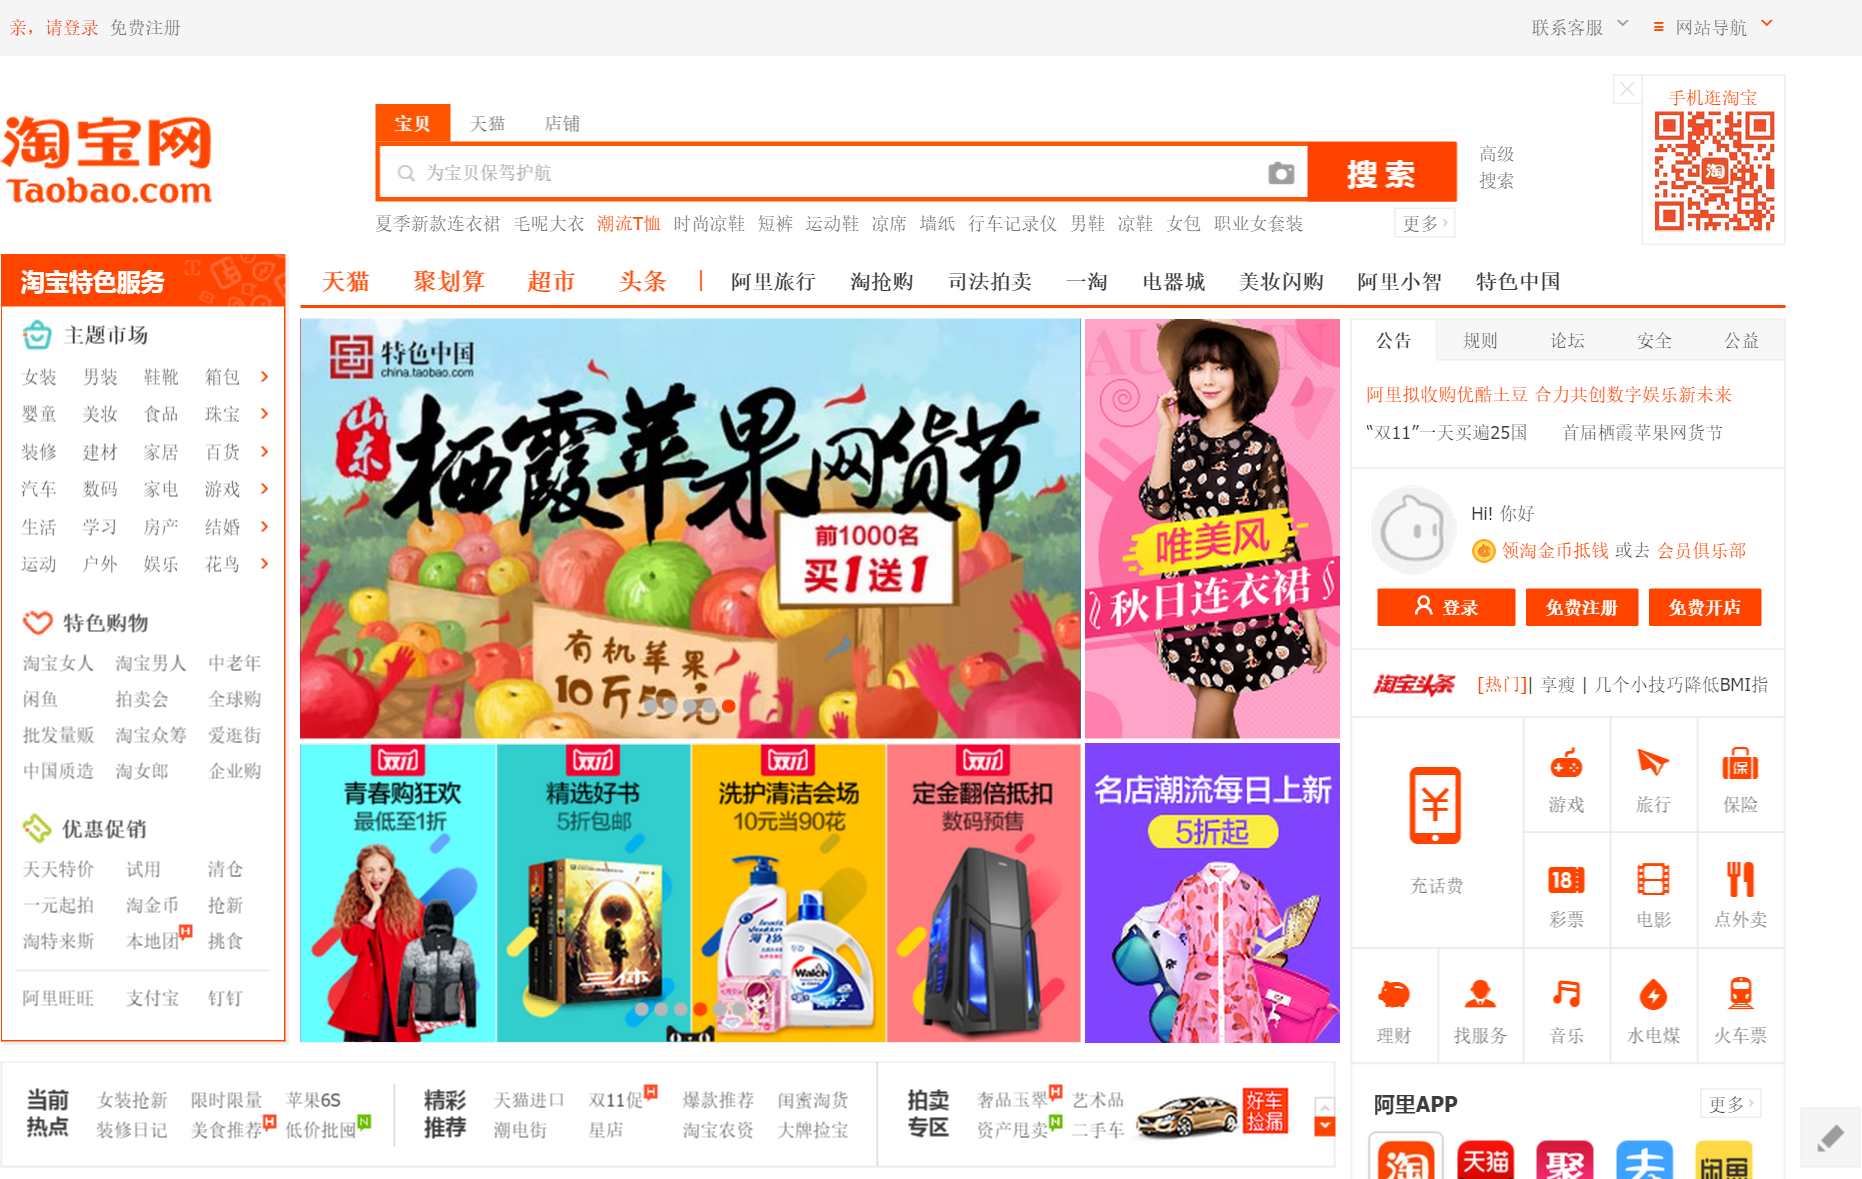 Image of Taobao website homepage